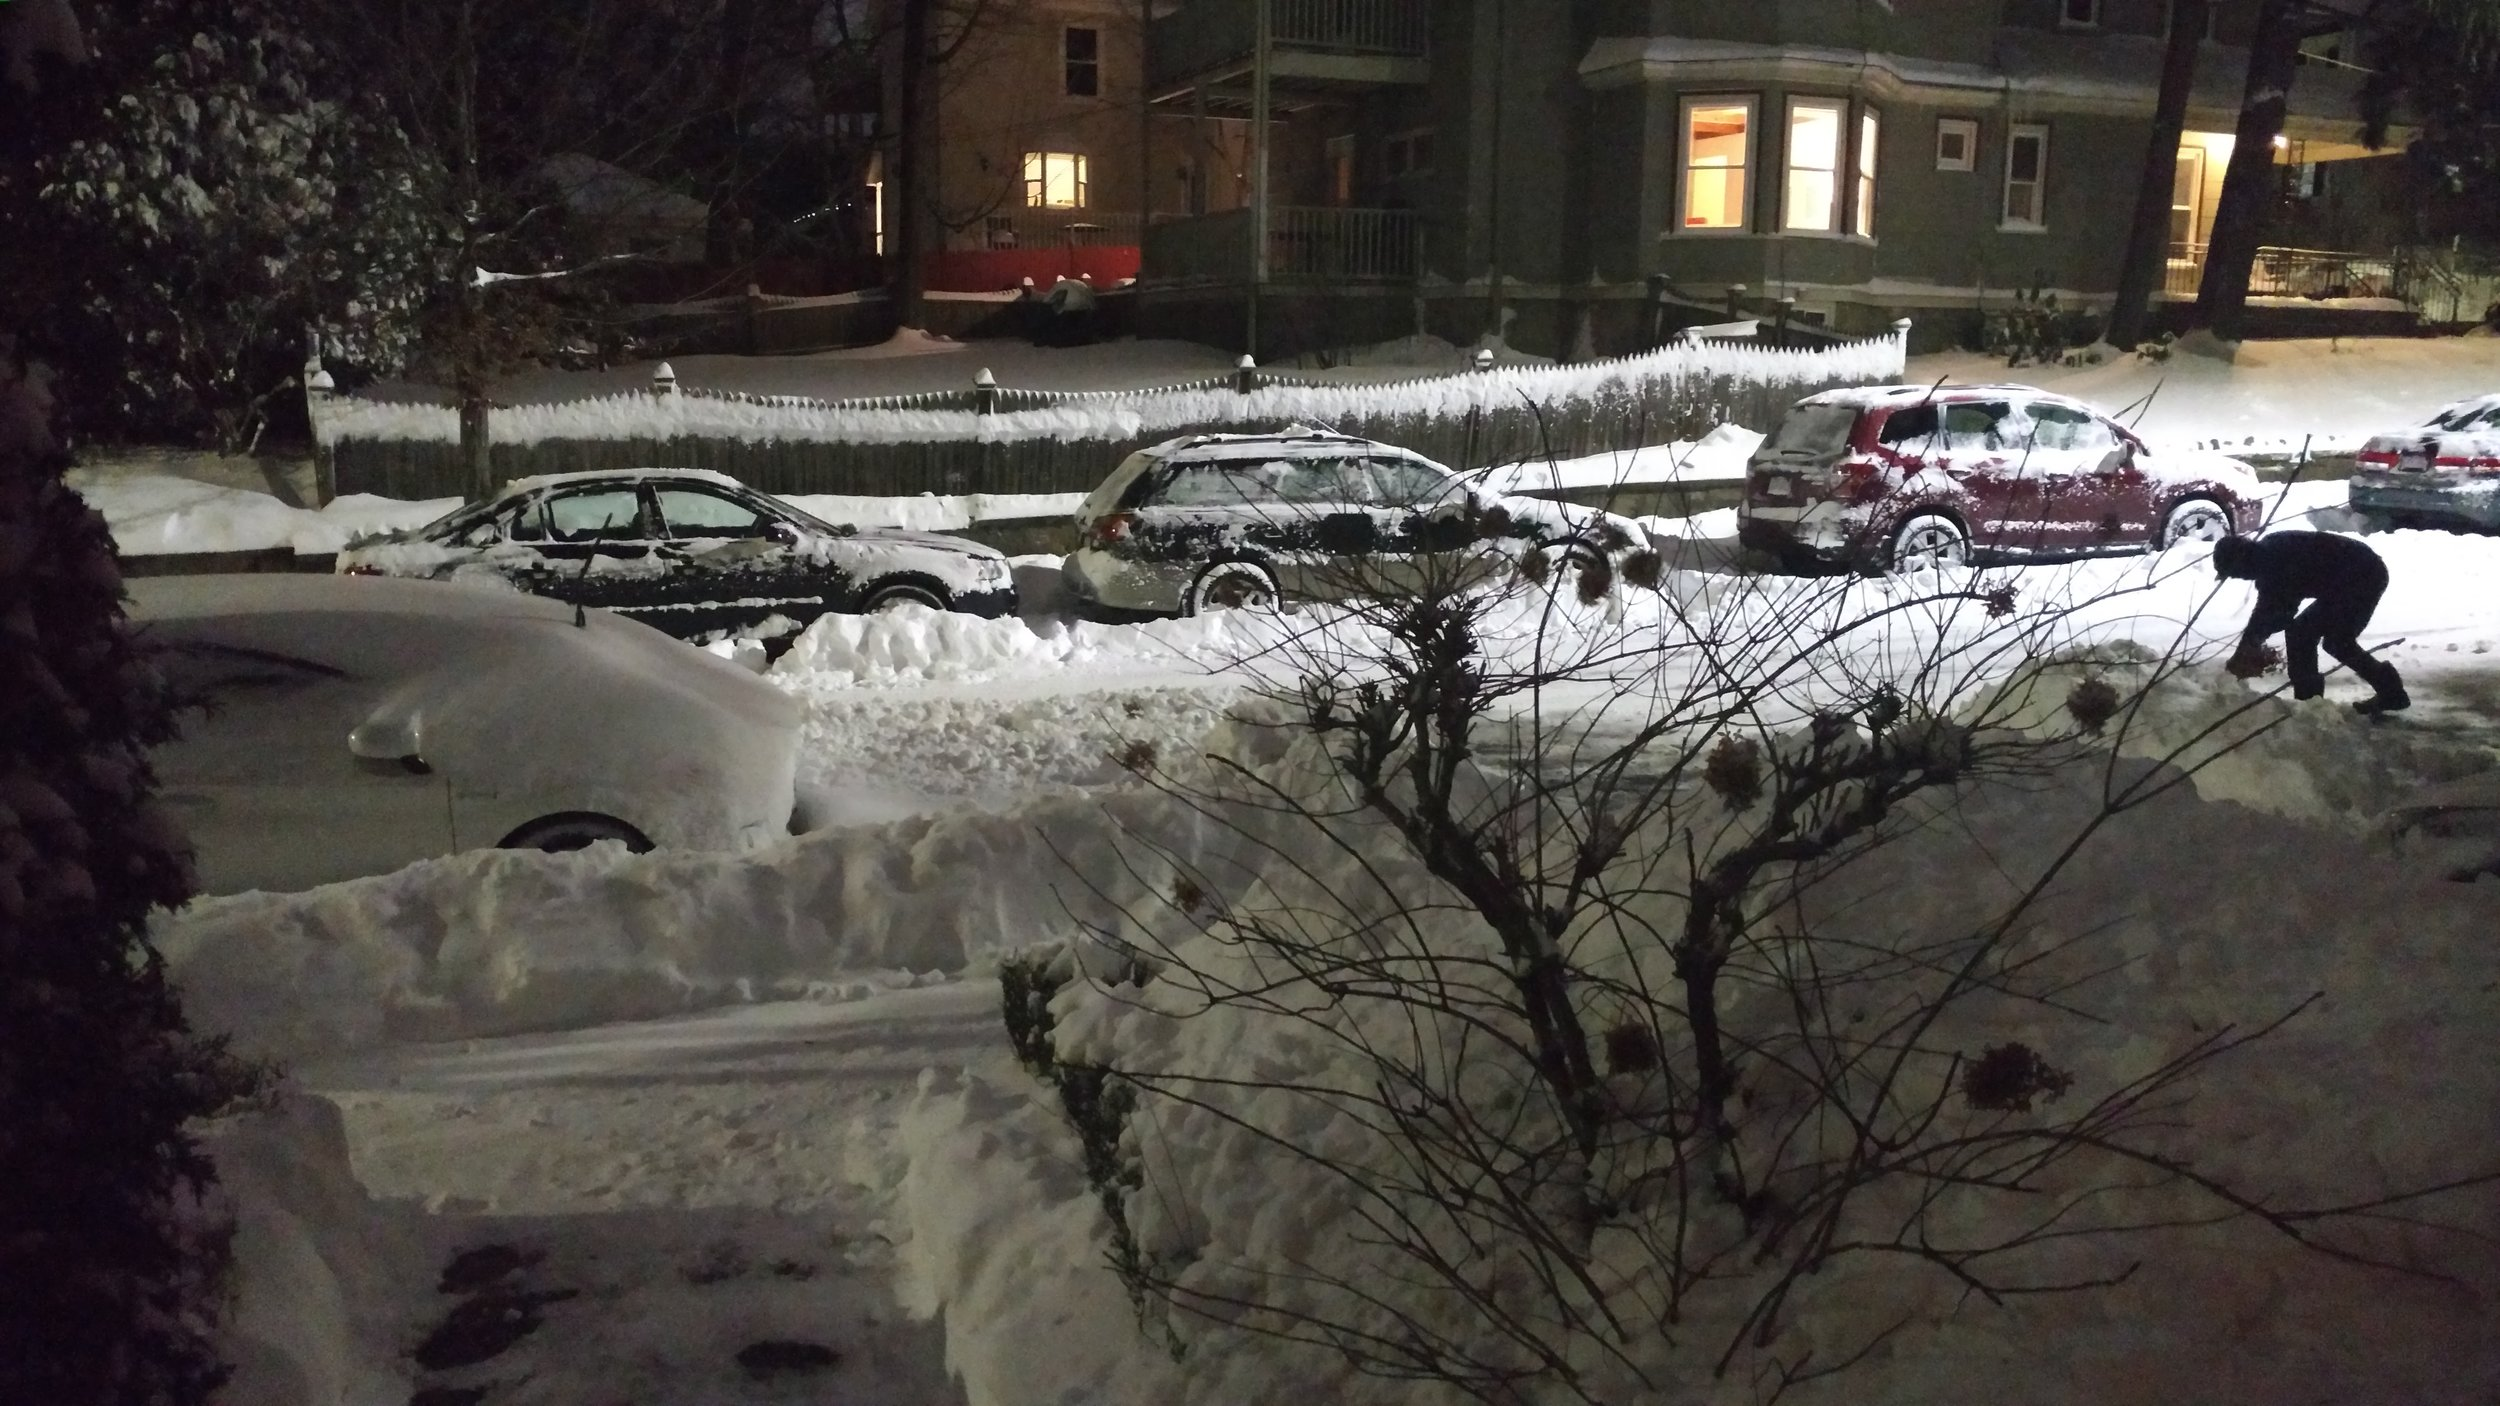 A view from outside my apartment last night.